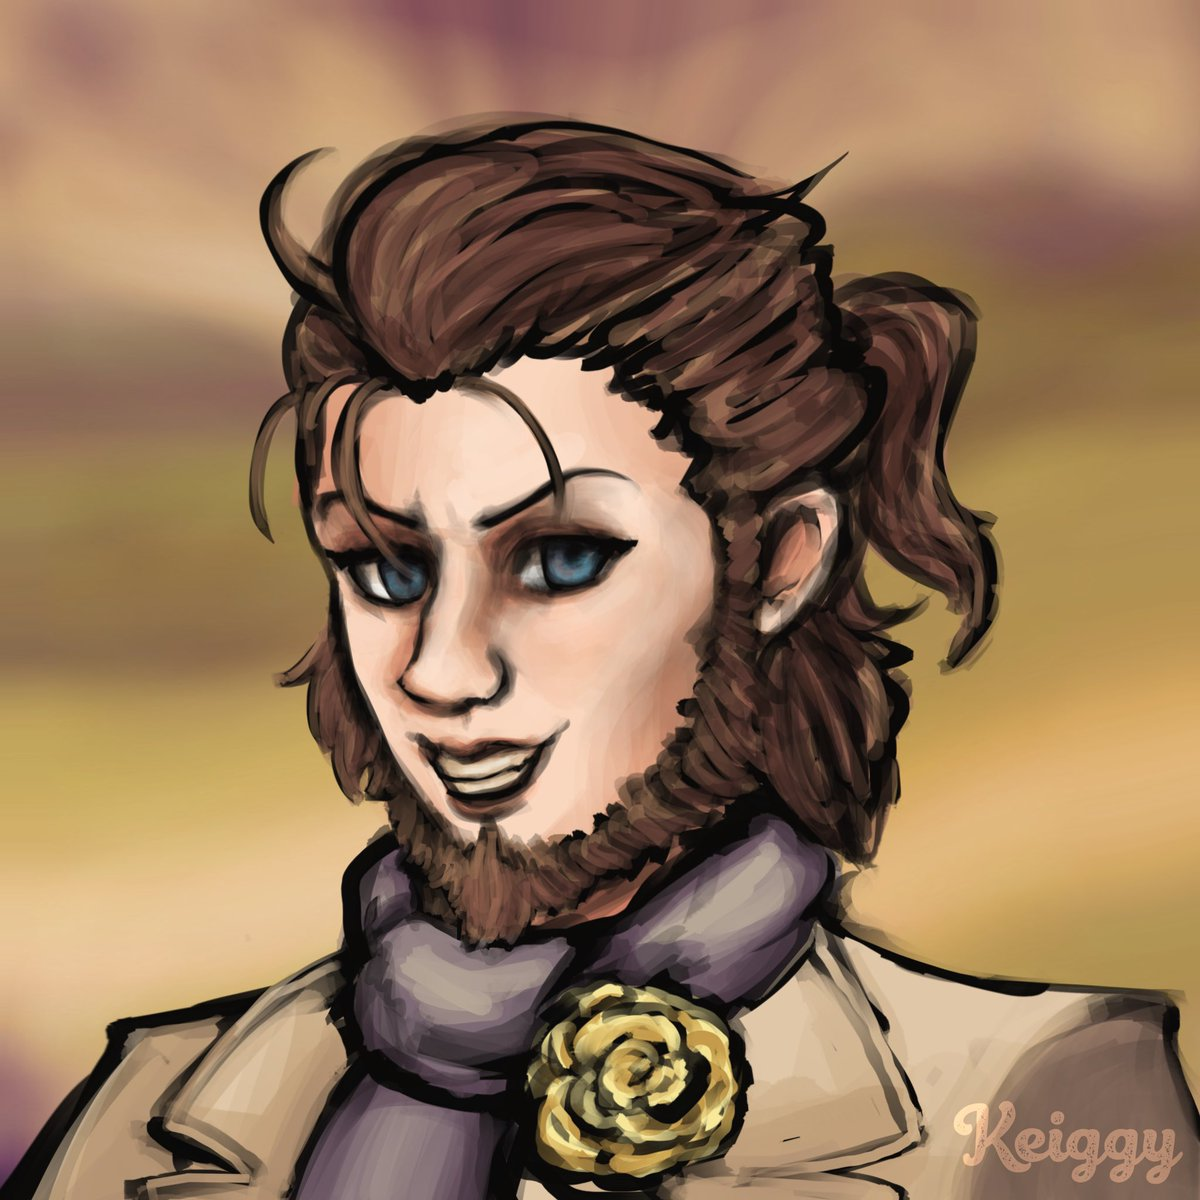 ĒĒT SÓRCERÆ Haven't gotten Bravely Default 2 yet, but the demos sure were something! I know I'll be eating a lot of sorcery soon enough. Here's a quick Elvis in the meantime. #SquareEnix #FinalFantasy #ArtistOnTwitter